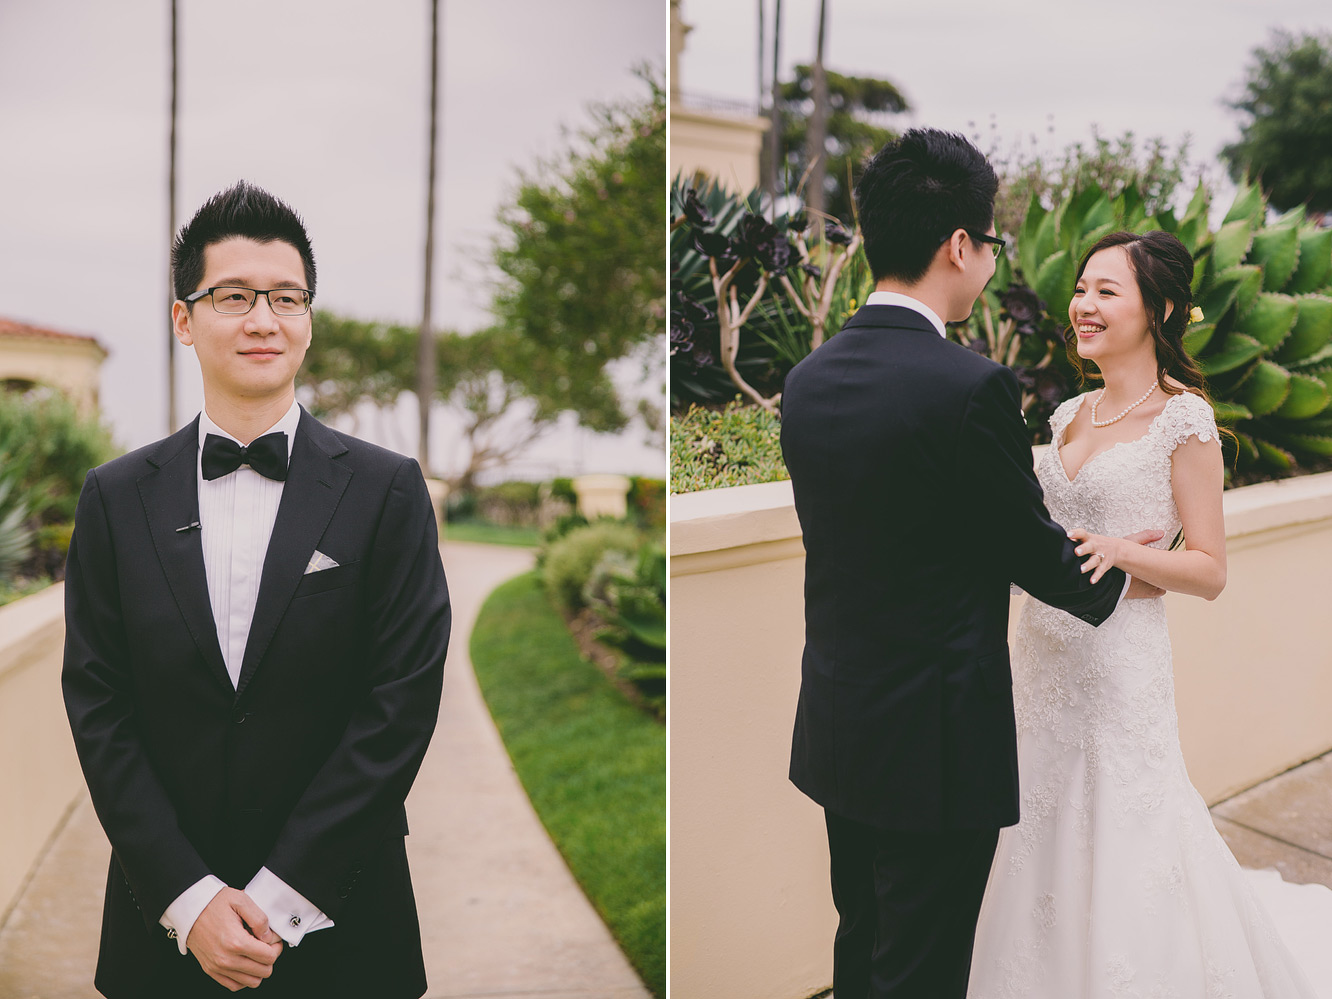 ritz-carlton-dana-point-wedding-1001